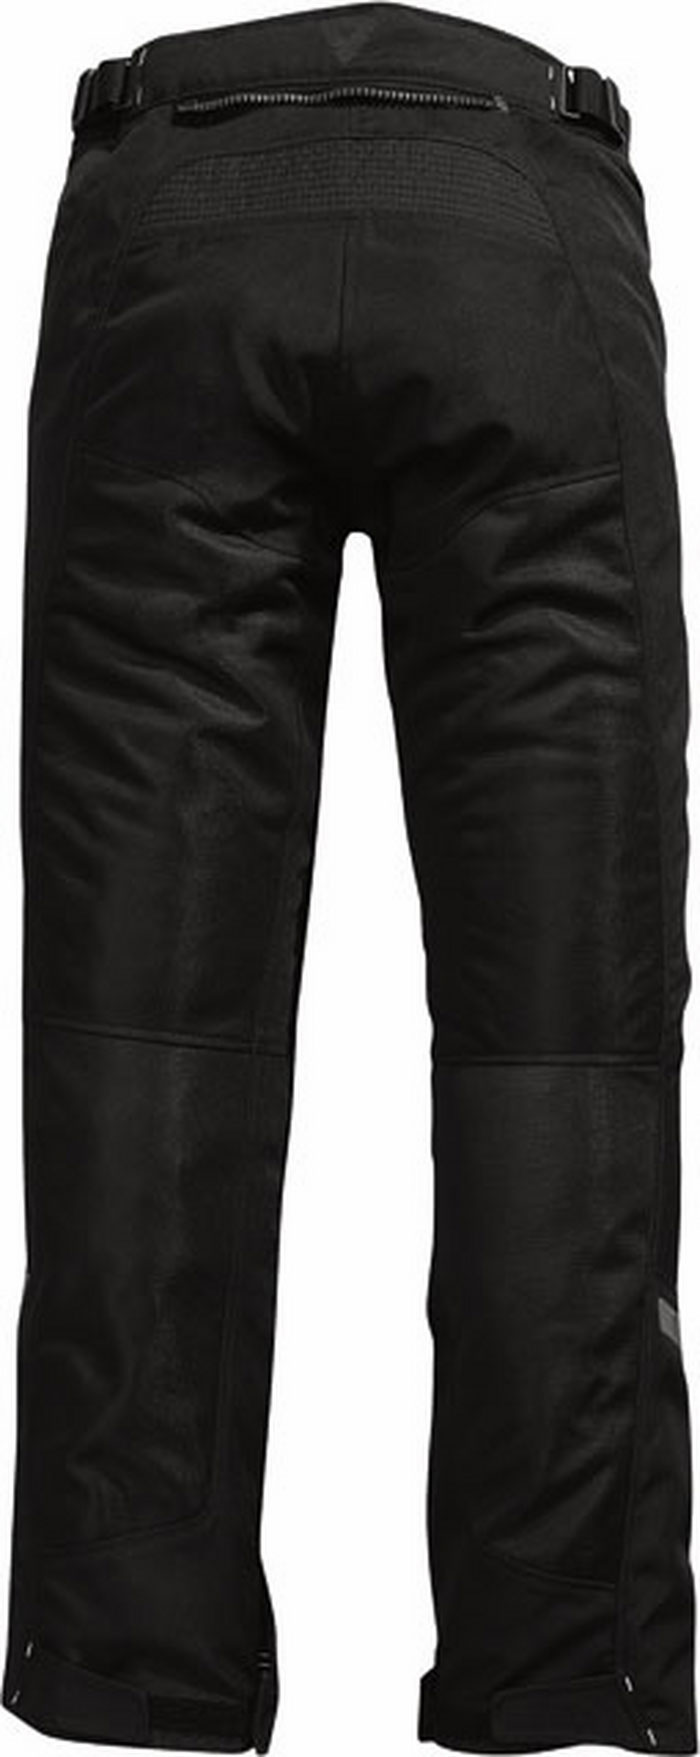 Pantaloni moto donna estivi Rev'it Airwave Ladies neri